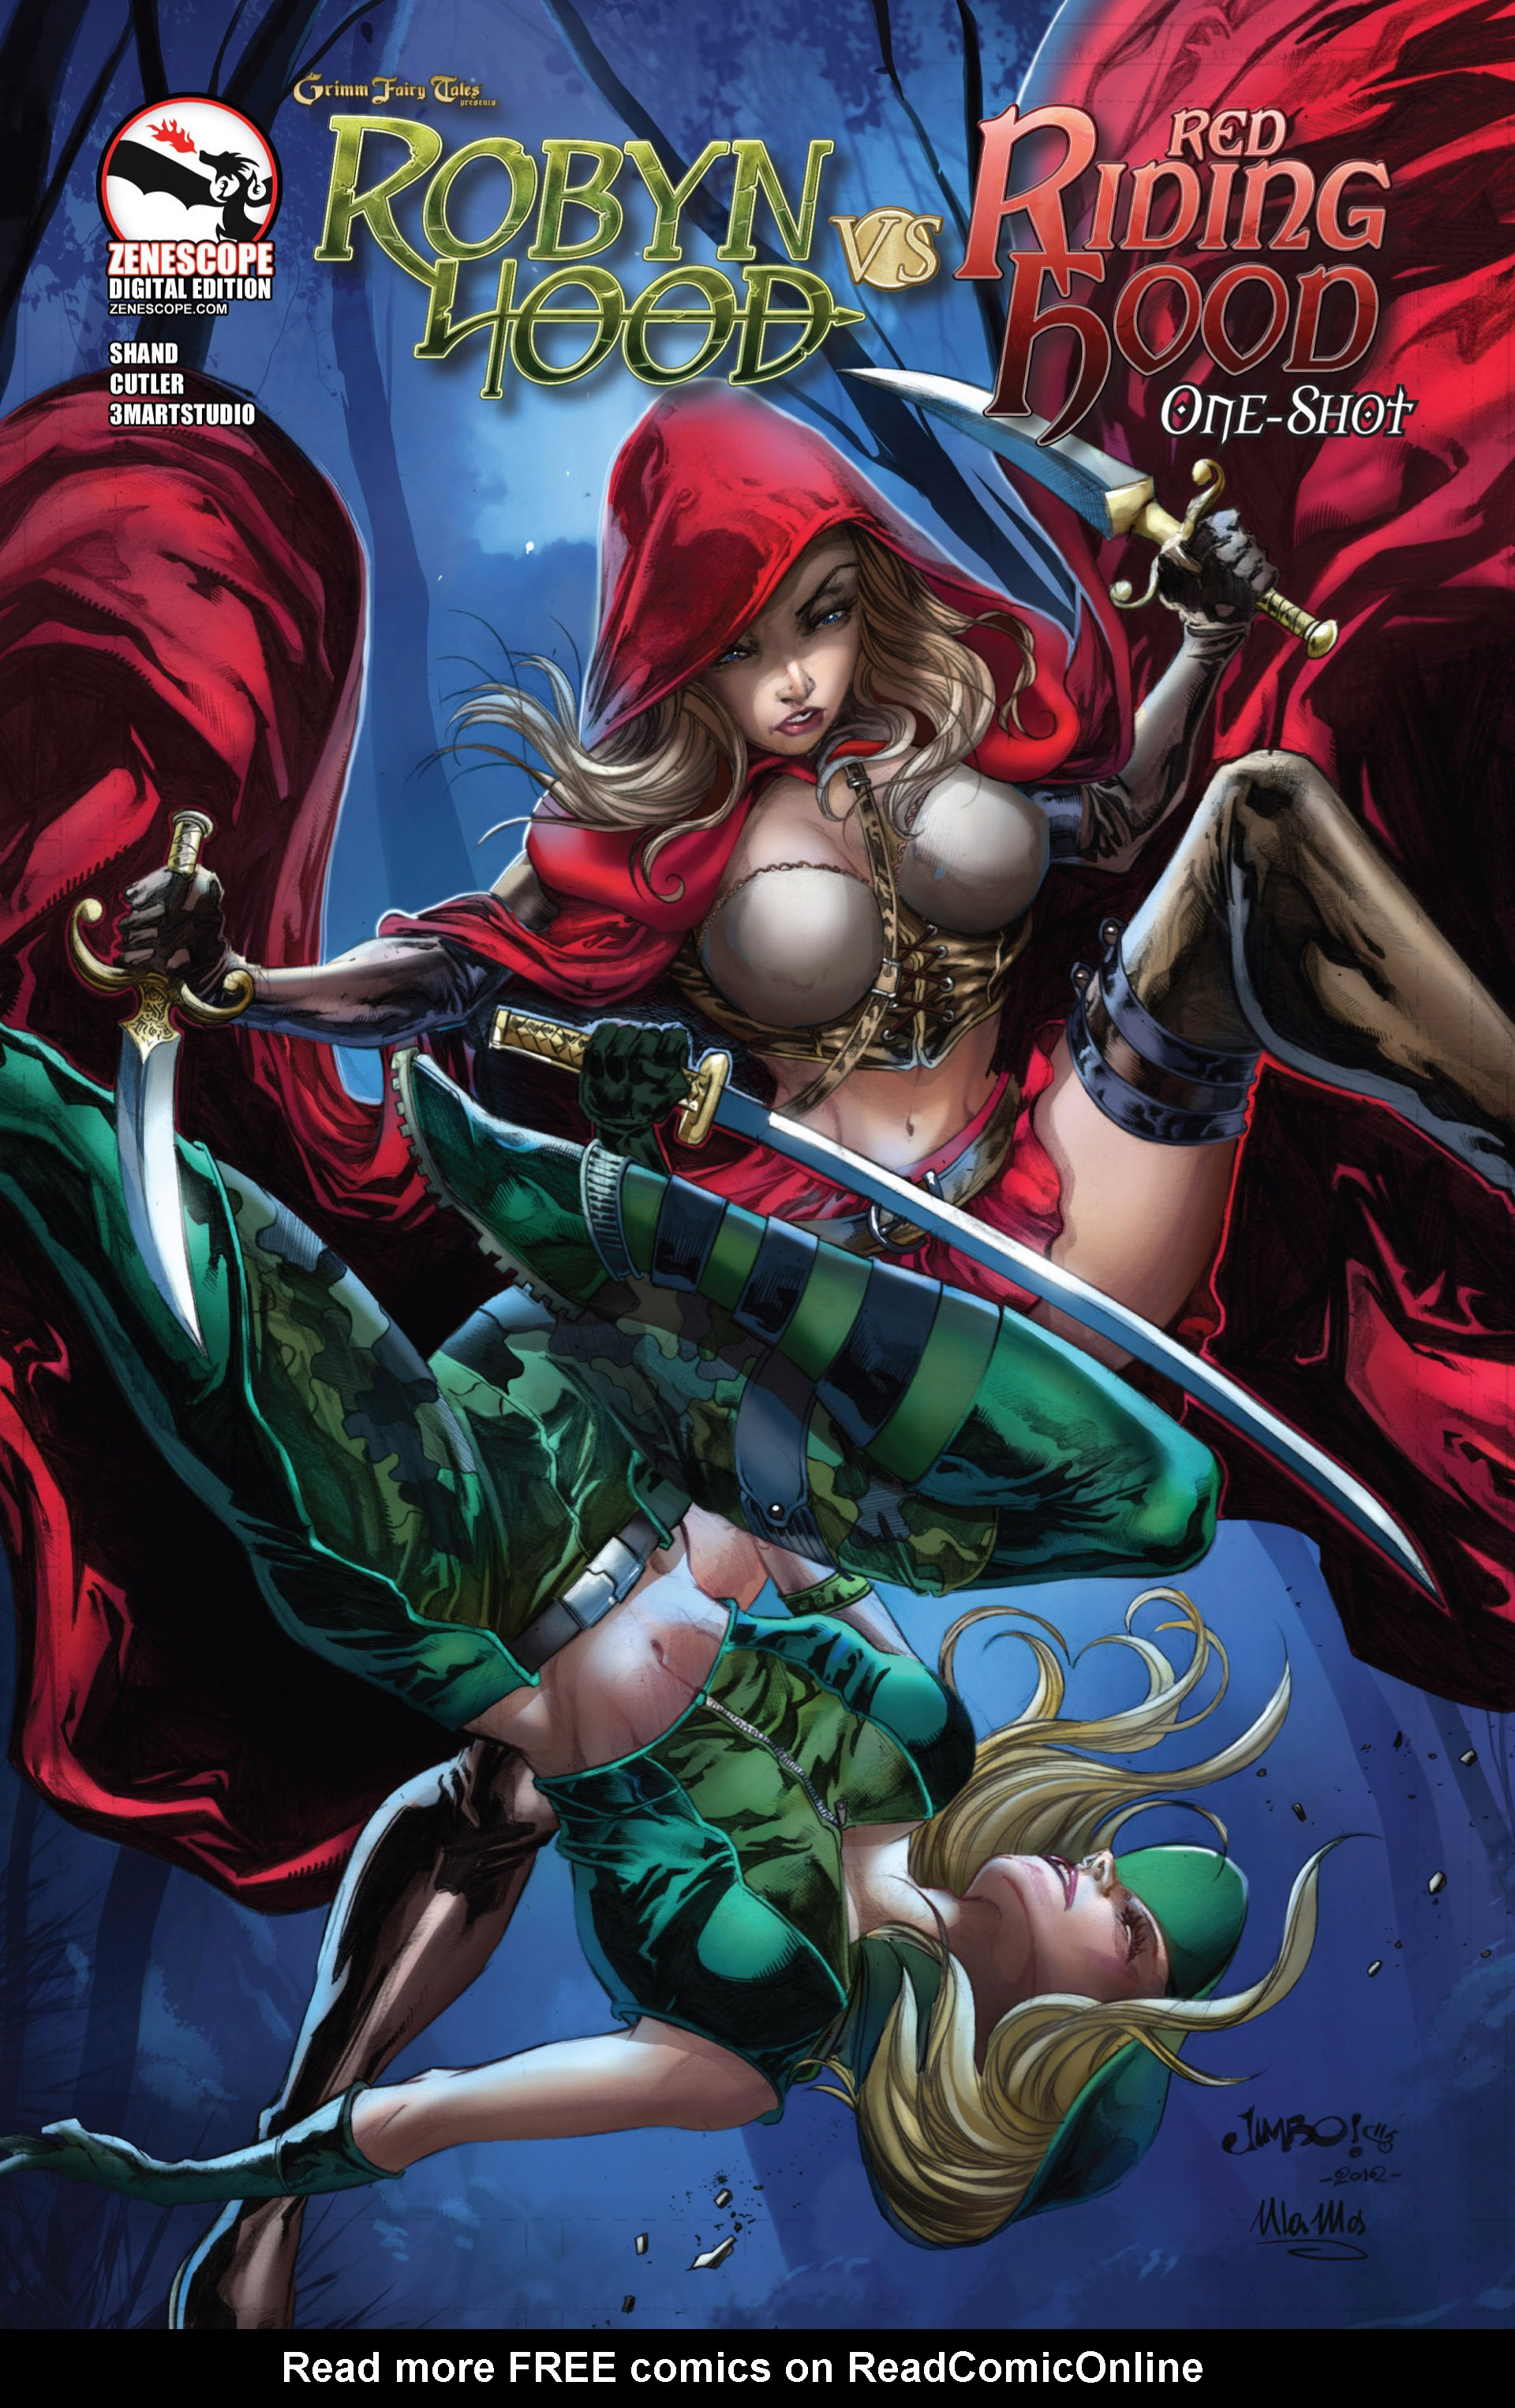 Grimm Fairy Tales presents Robyn Hood vs. Red Riding Hood Full Page 1